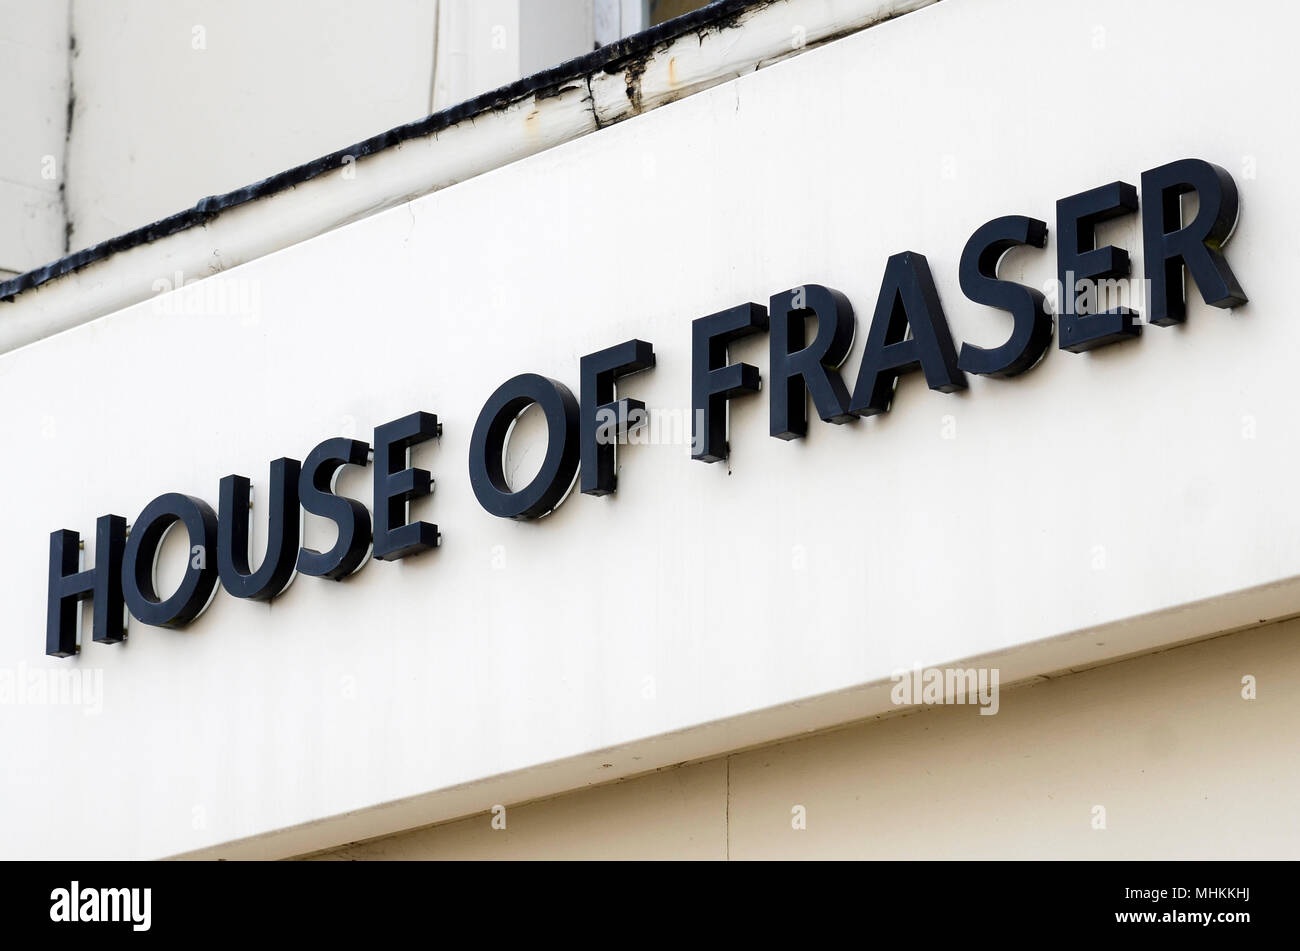 House of Fraser, Leamington Spa, UK, one of 31 stores due for closure. House of Fraser announces store closures, a Company Voluntary Arrangement,  and a new majority owner in latest restructuring plan. Hundreds of jobs are at stake throughout the chain's 59 stores. CBanner, a Chinese retail business which owns Hamleys, will take a new 51% stake, with former Chinese majority shareholders Nanjing Cenbest retaining a minority share. Credit: Antony Nettle/Alamy Live News - Stock Image